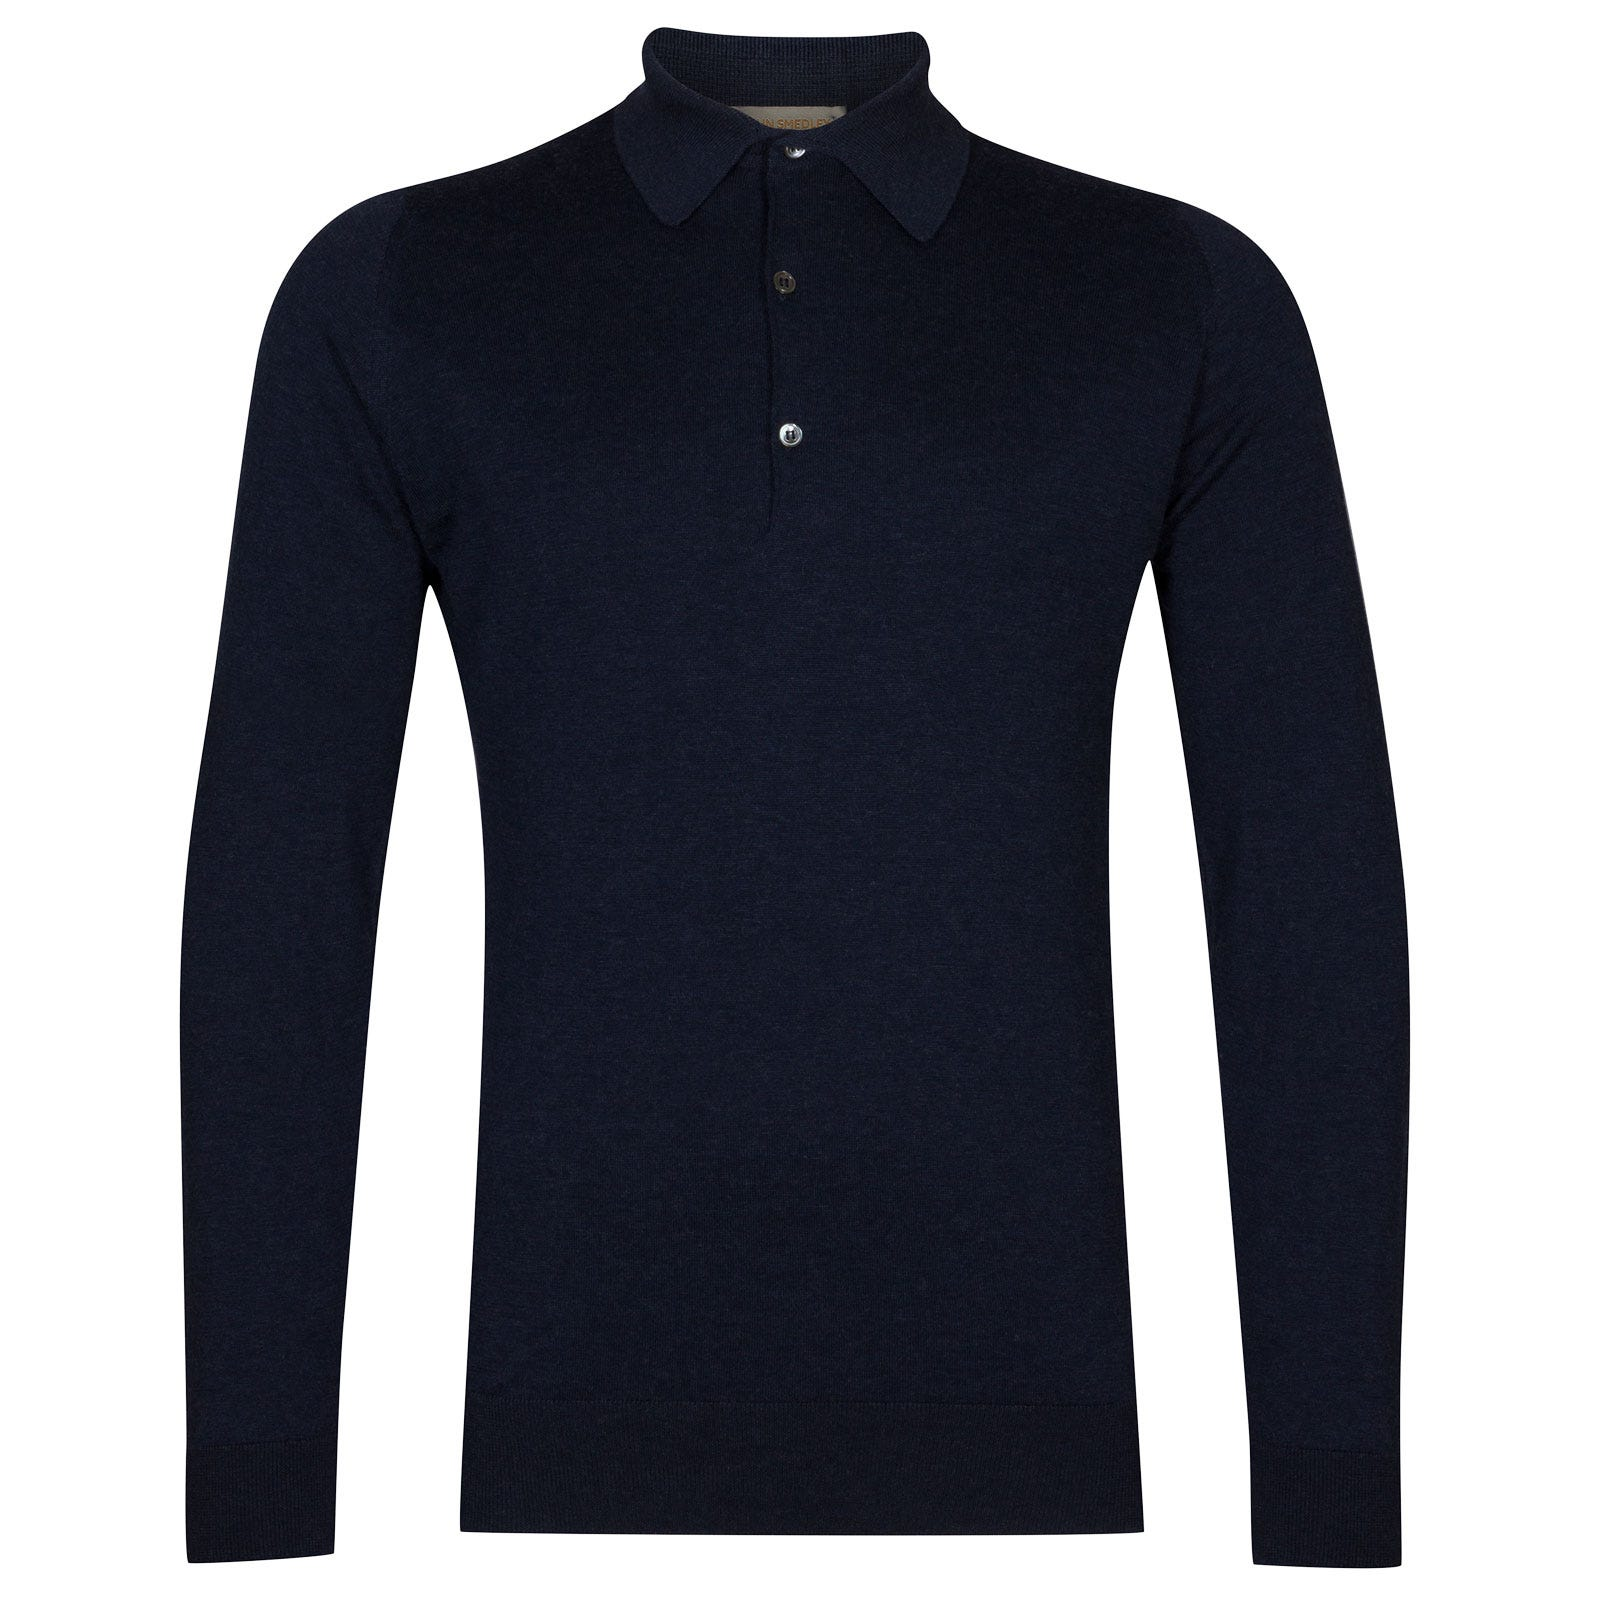 John Smedley Lanlay Sea Island Cotton and Cashmere Shirt in Indigo-M